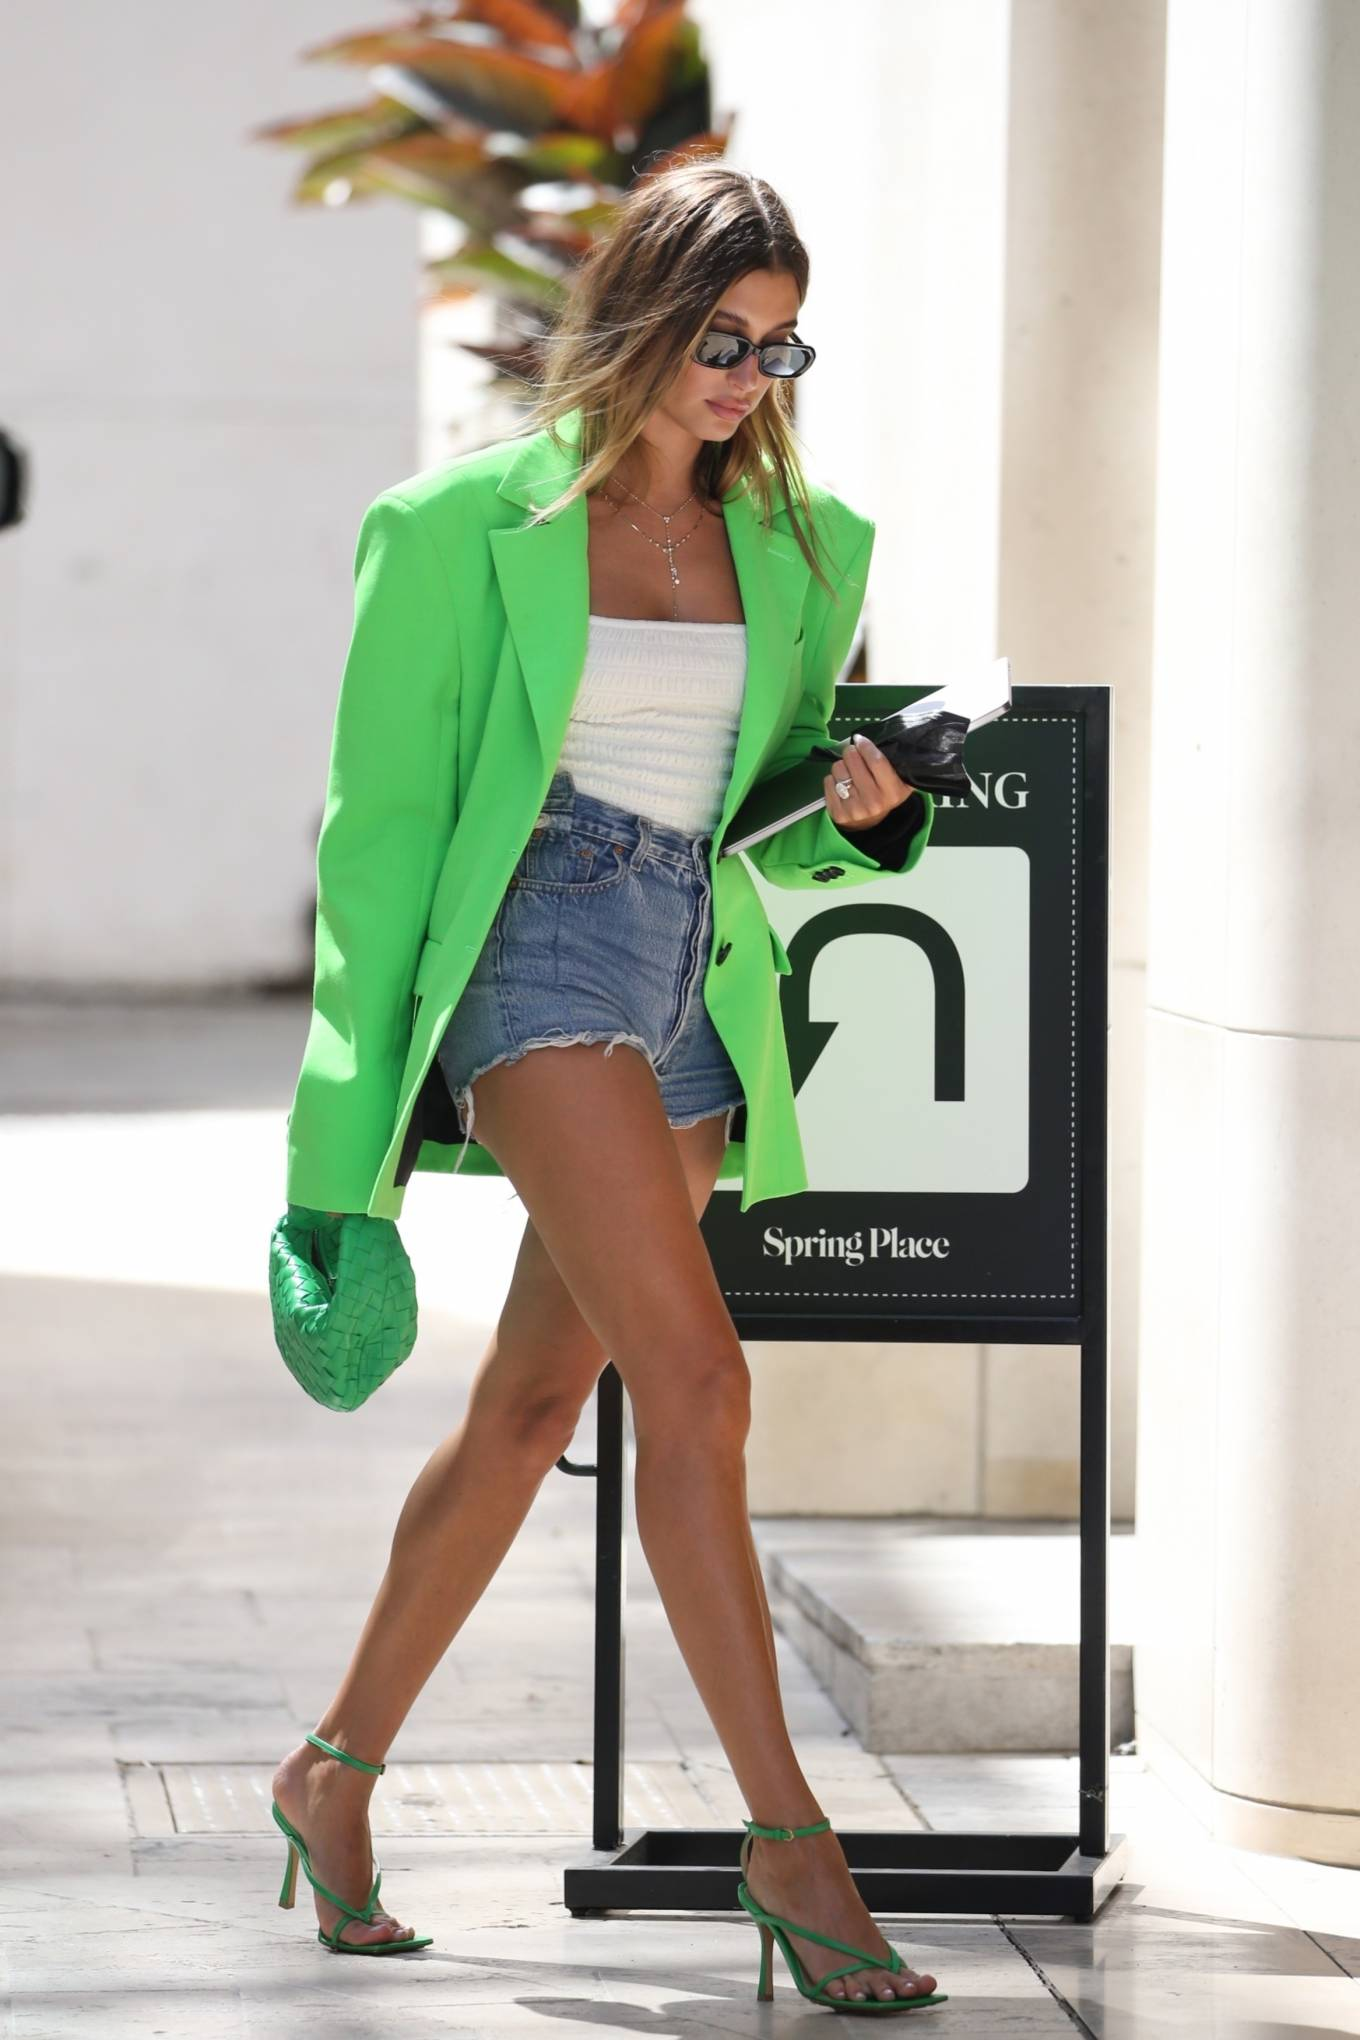 Hailey Baldwin, green sandals, leather, Bottega Veneta sandals, neon green blazer, green Bottega Veneta hand bag, square, ankle, high heel, figure hugging white Toteme camisole, black sunglasses, open toe, thin straps. Hailey Bieber rocking square green Bottega Veneta ankle sandals with high heel and thin straps